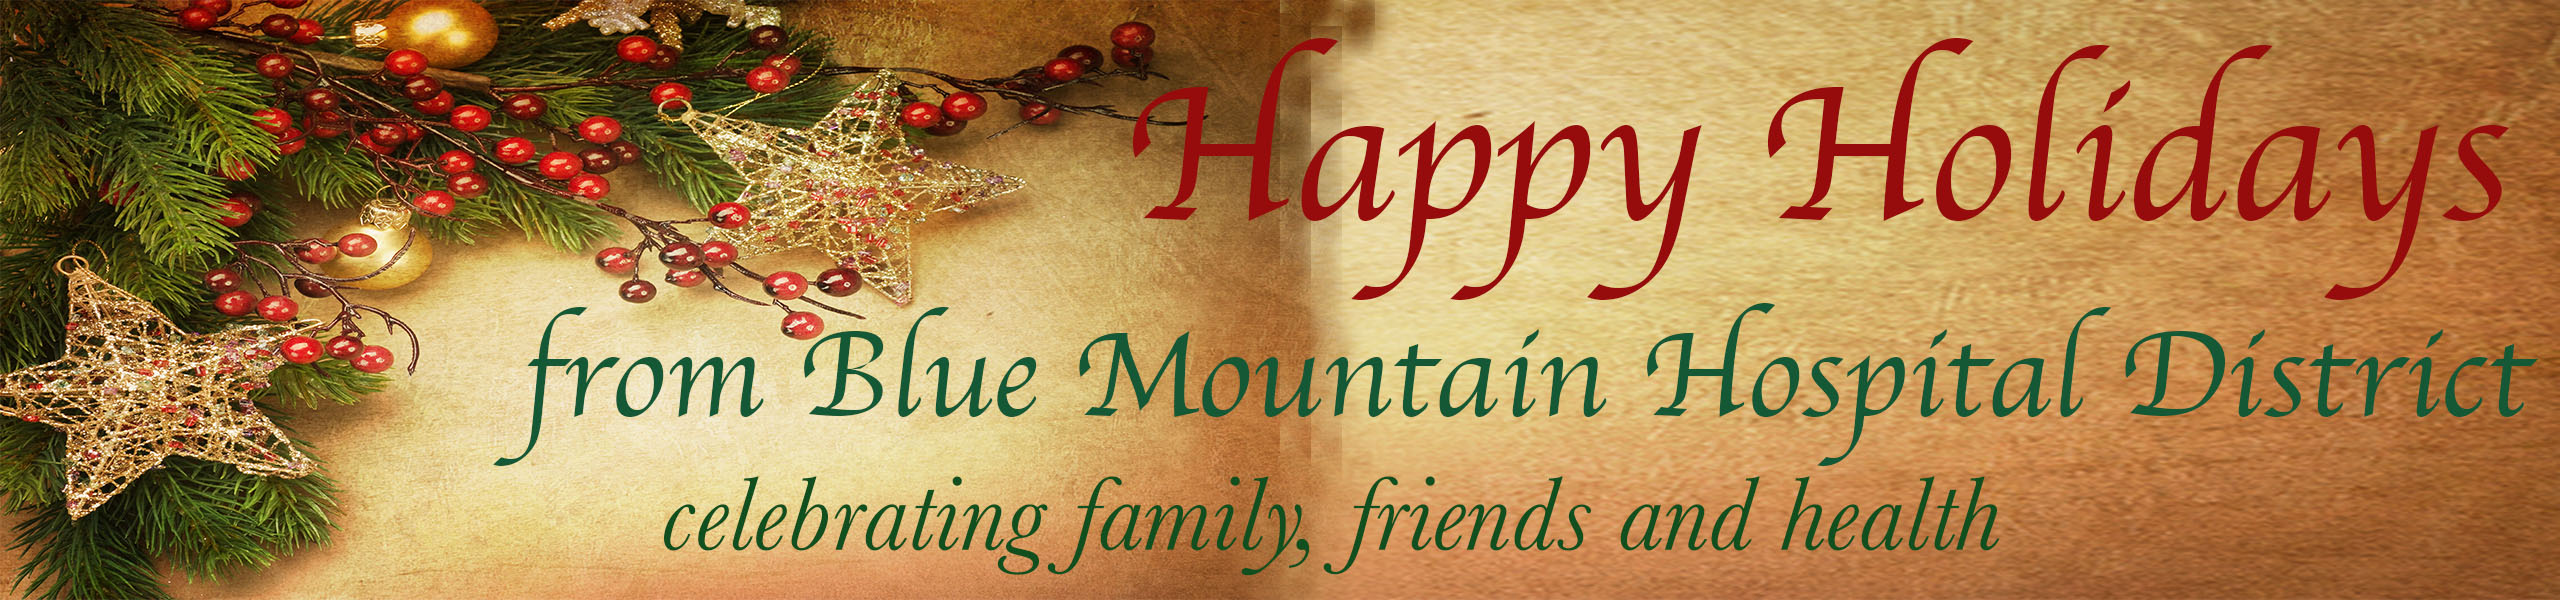 """""""Happy Holidays from Blue Mountain Hospital District celebrating family, friends & health""""- 2 gold snowflake ornaments, two round gold ornament balls, red holly berries and evergreen branches to the left of a tan background"""